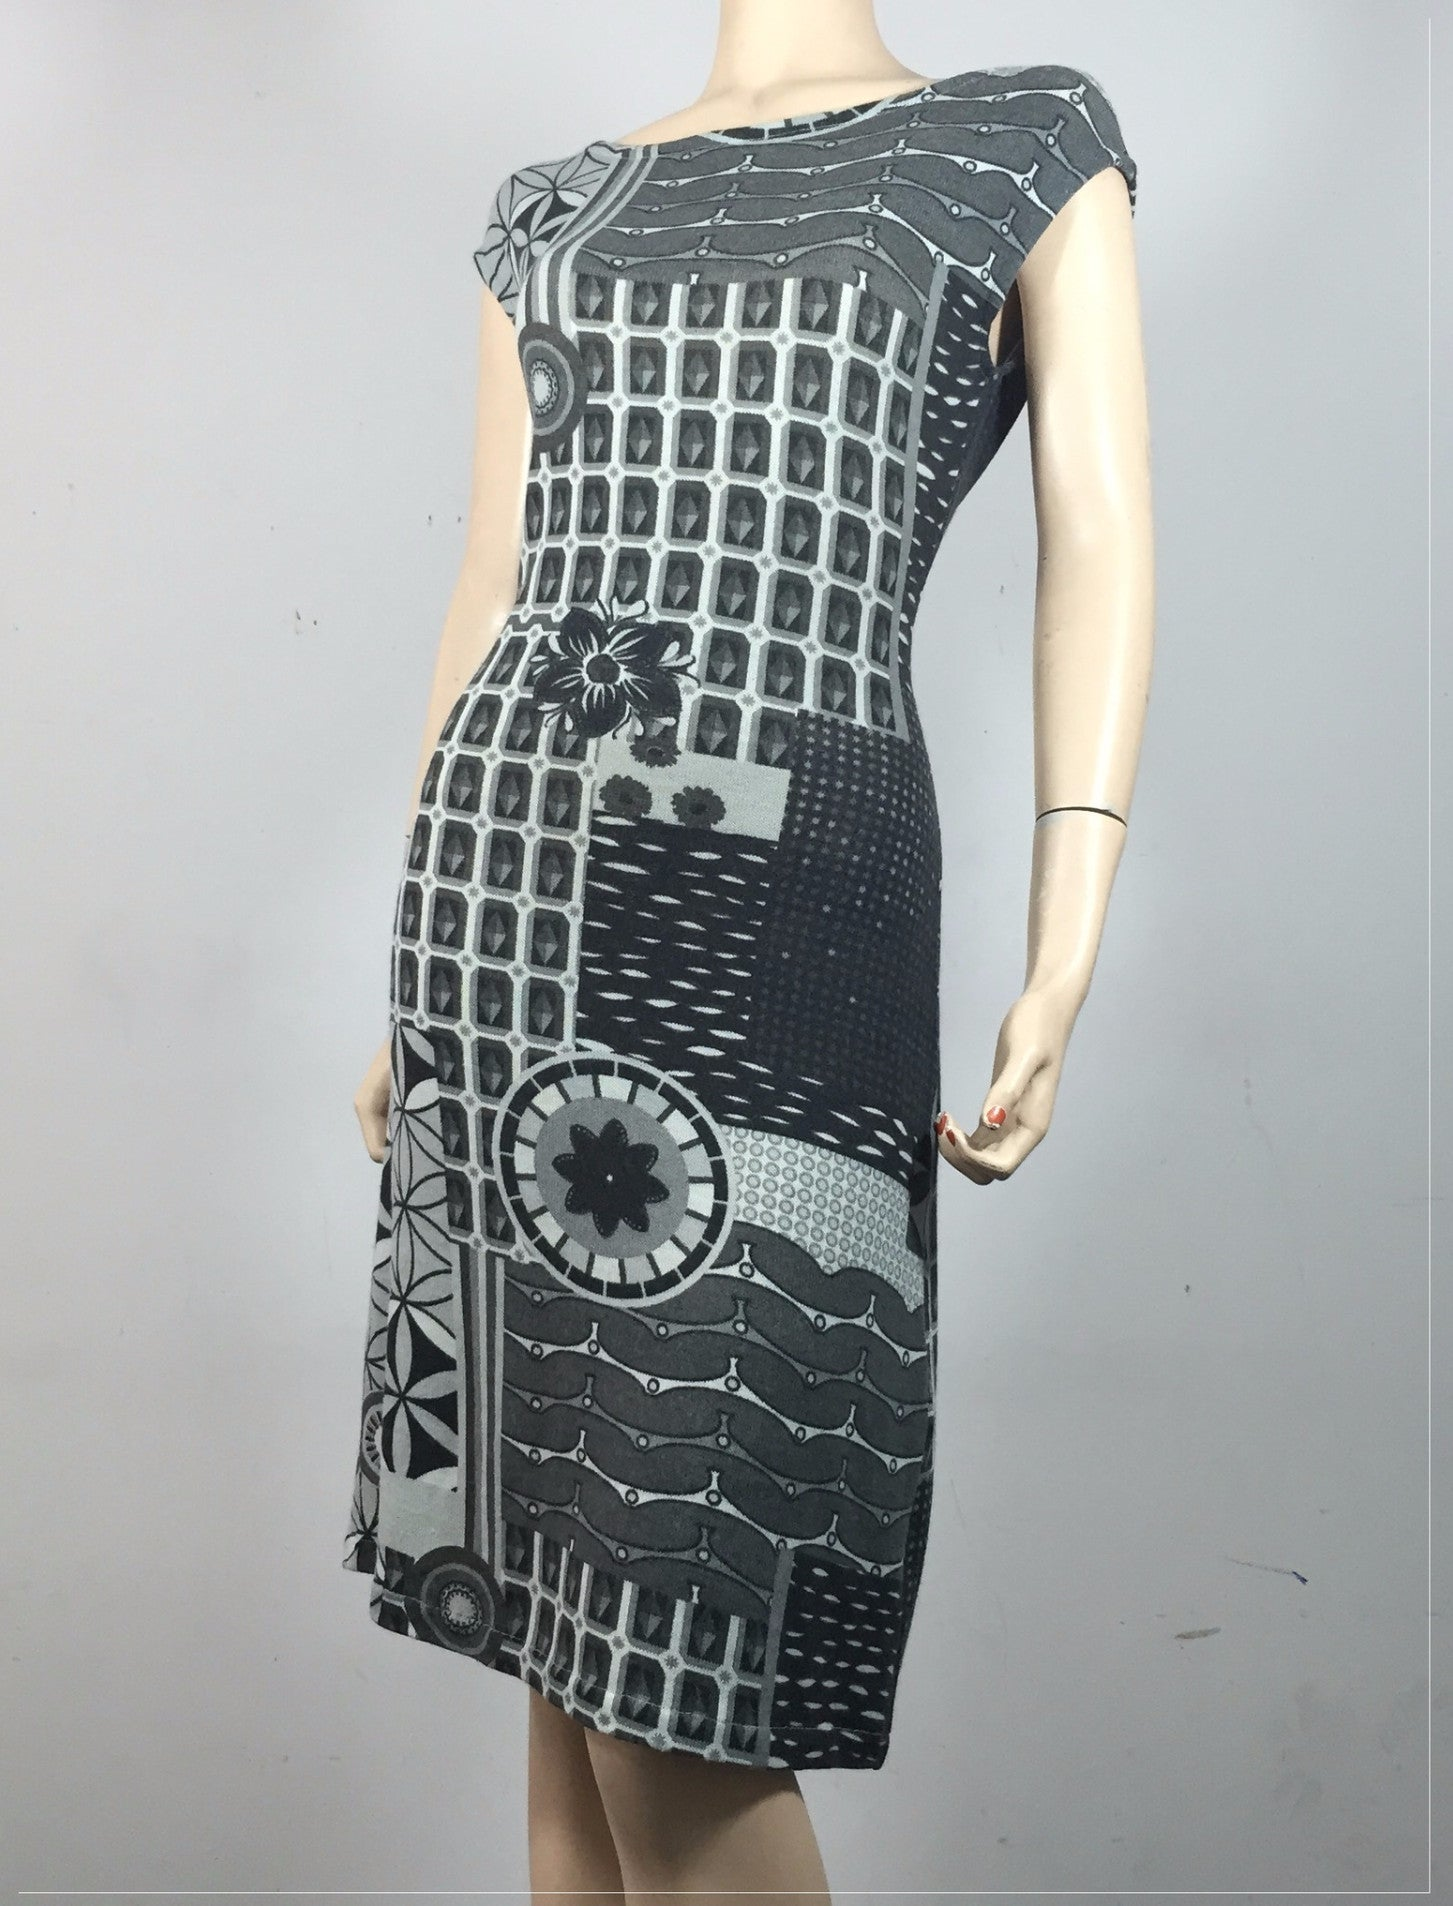 Geo Rising Darlene Dress